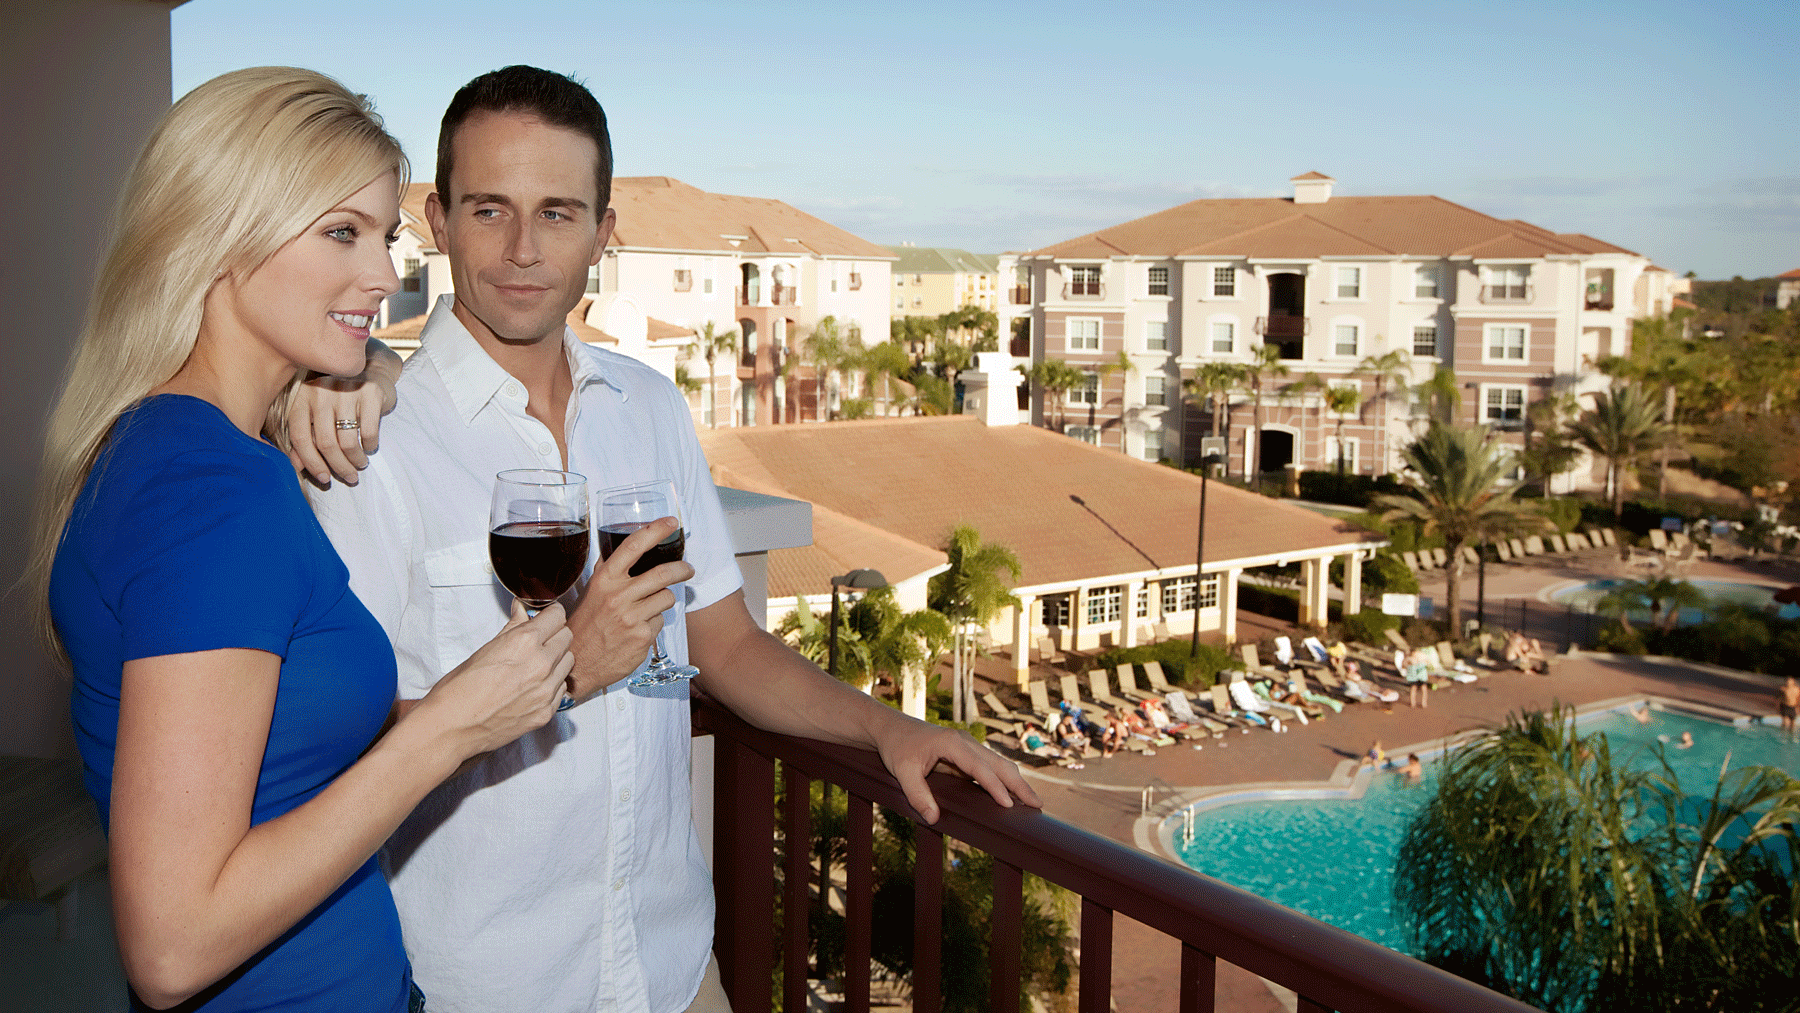 Couple drinking wine on balcony overlooking pool